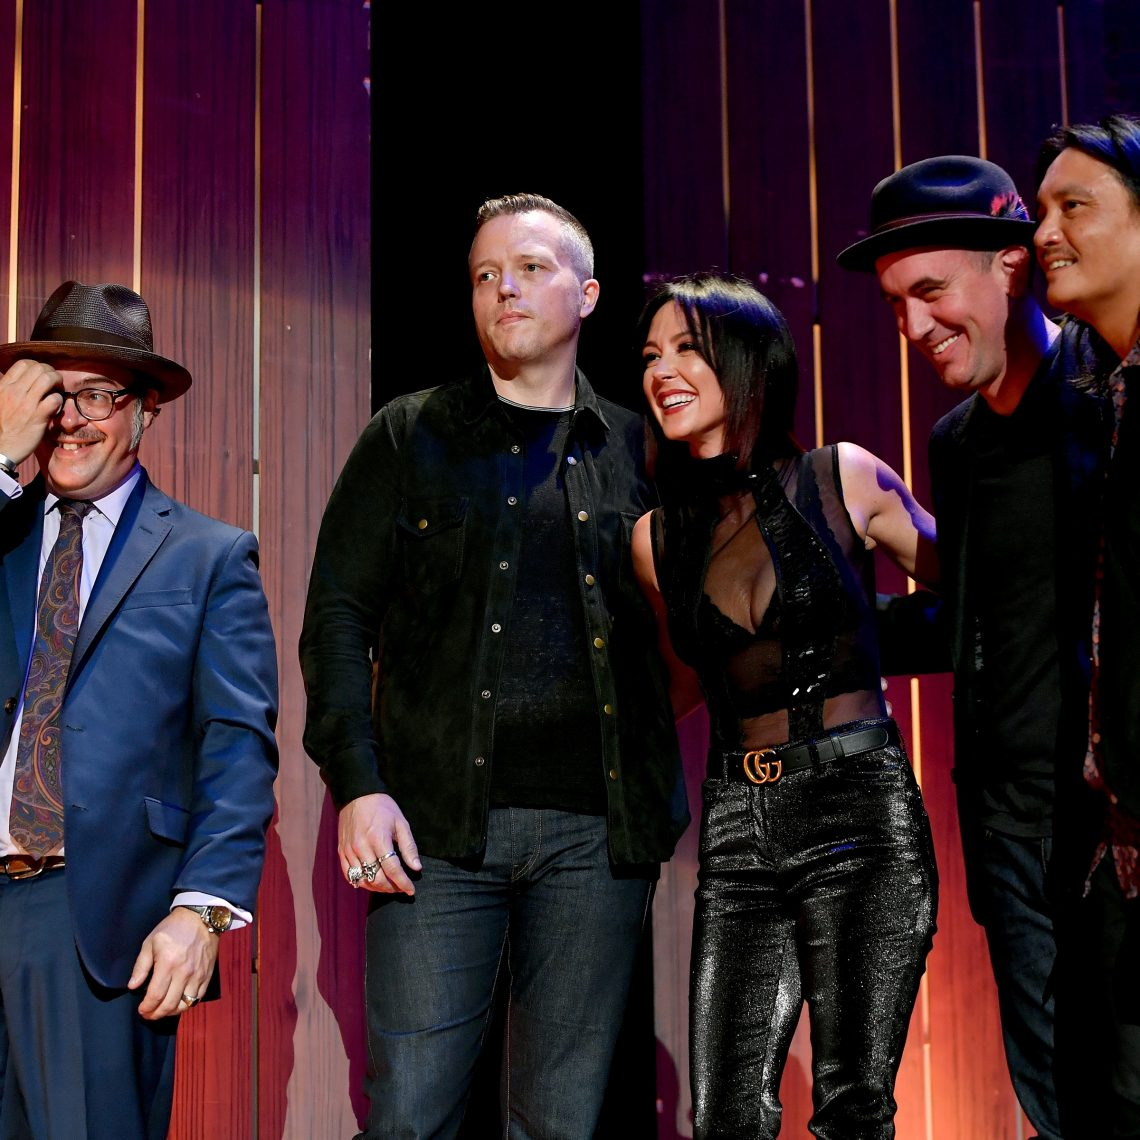 The Nashville Sound: Band of the Year winners Jason Isbell and the 400 Unit (L-R) Jimbo Hart, Isbell, Amanda Shires, Chad Gamble, and Derrick DeBorja. (Photo by Erika Goldring/Getty Images for Americana Music Association)